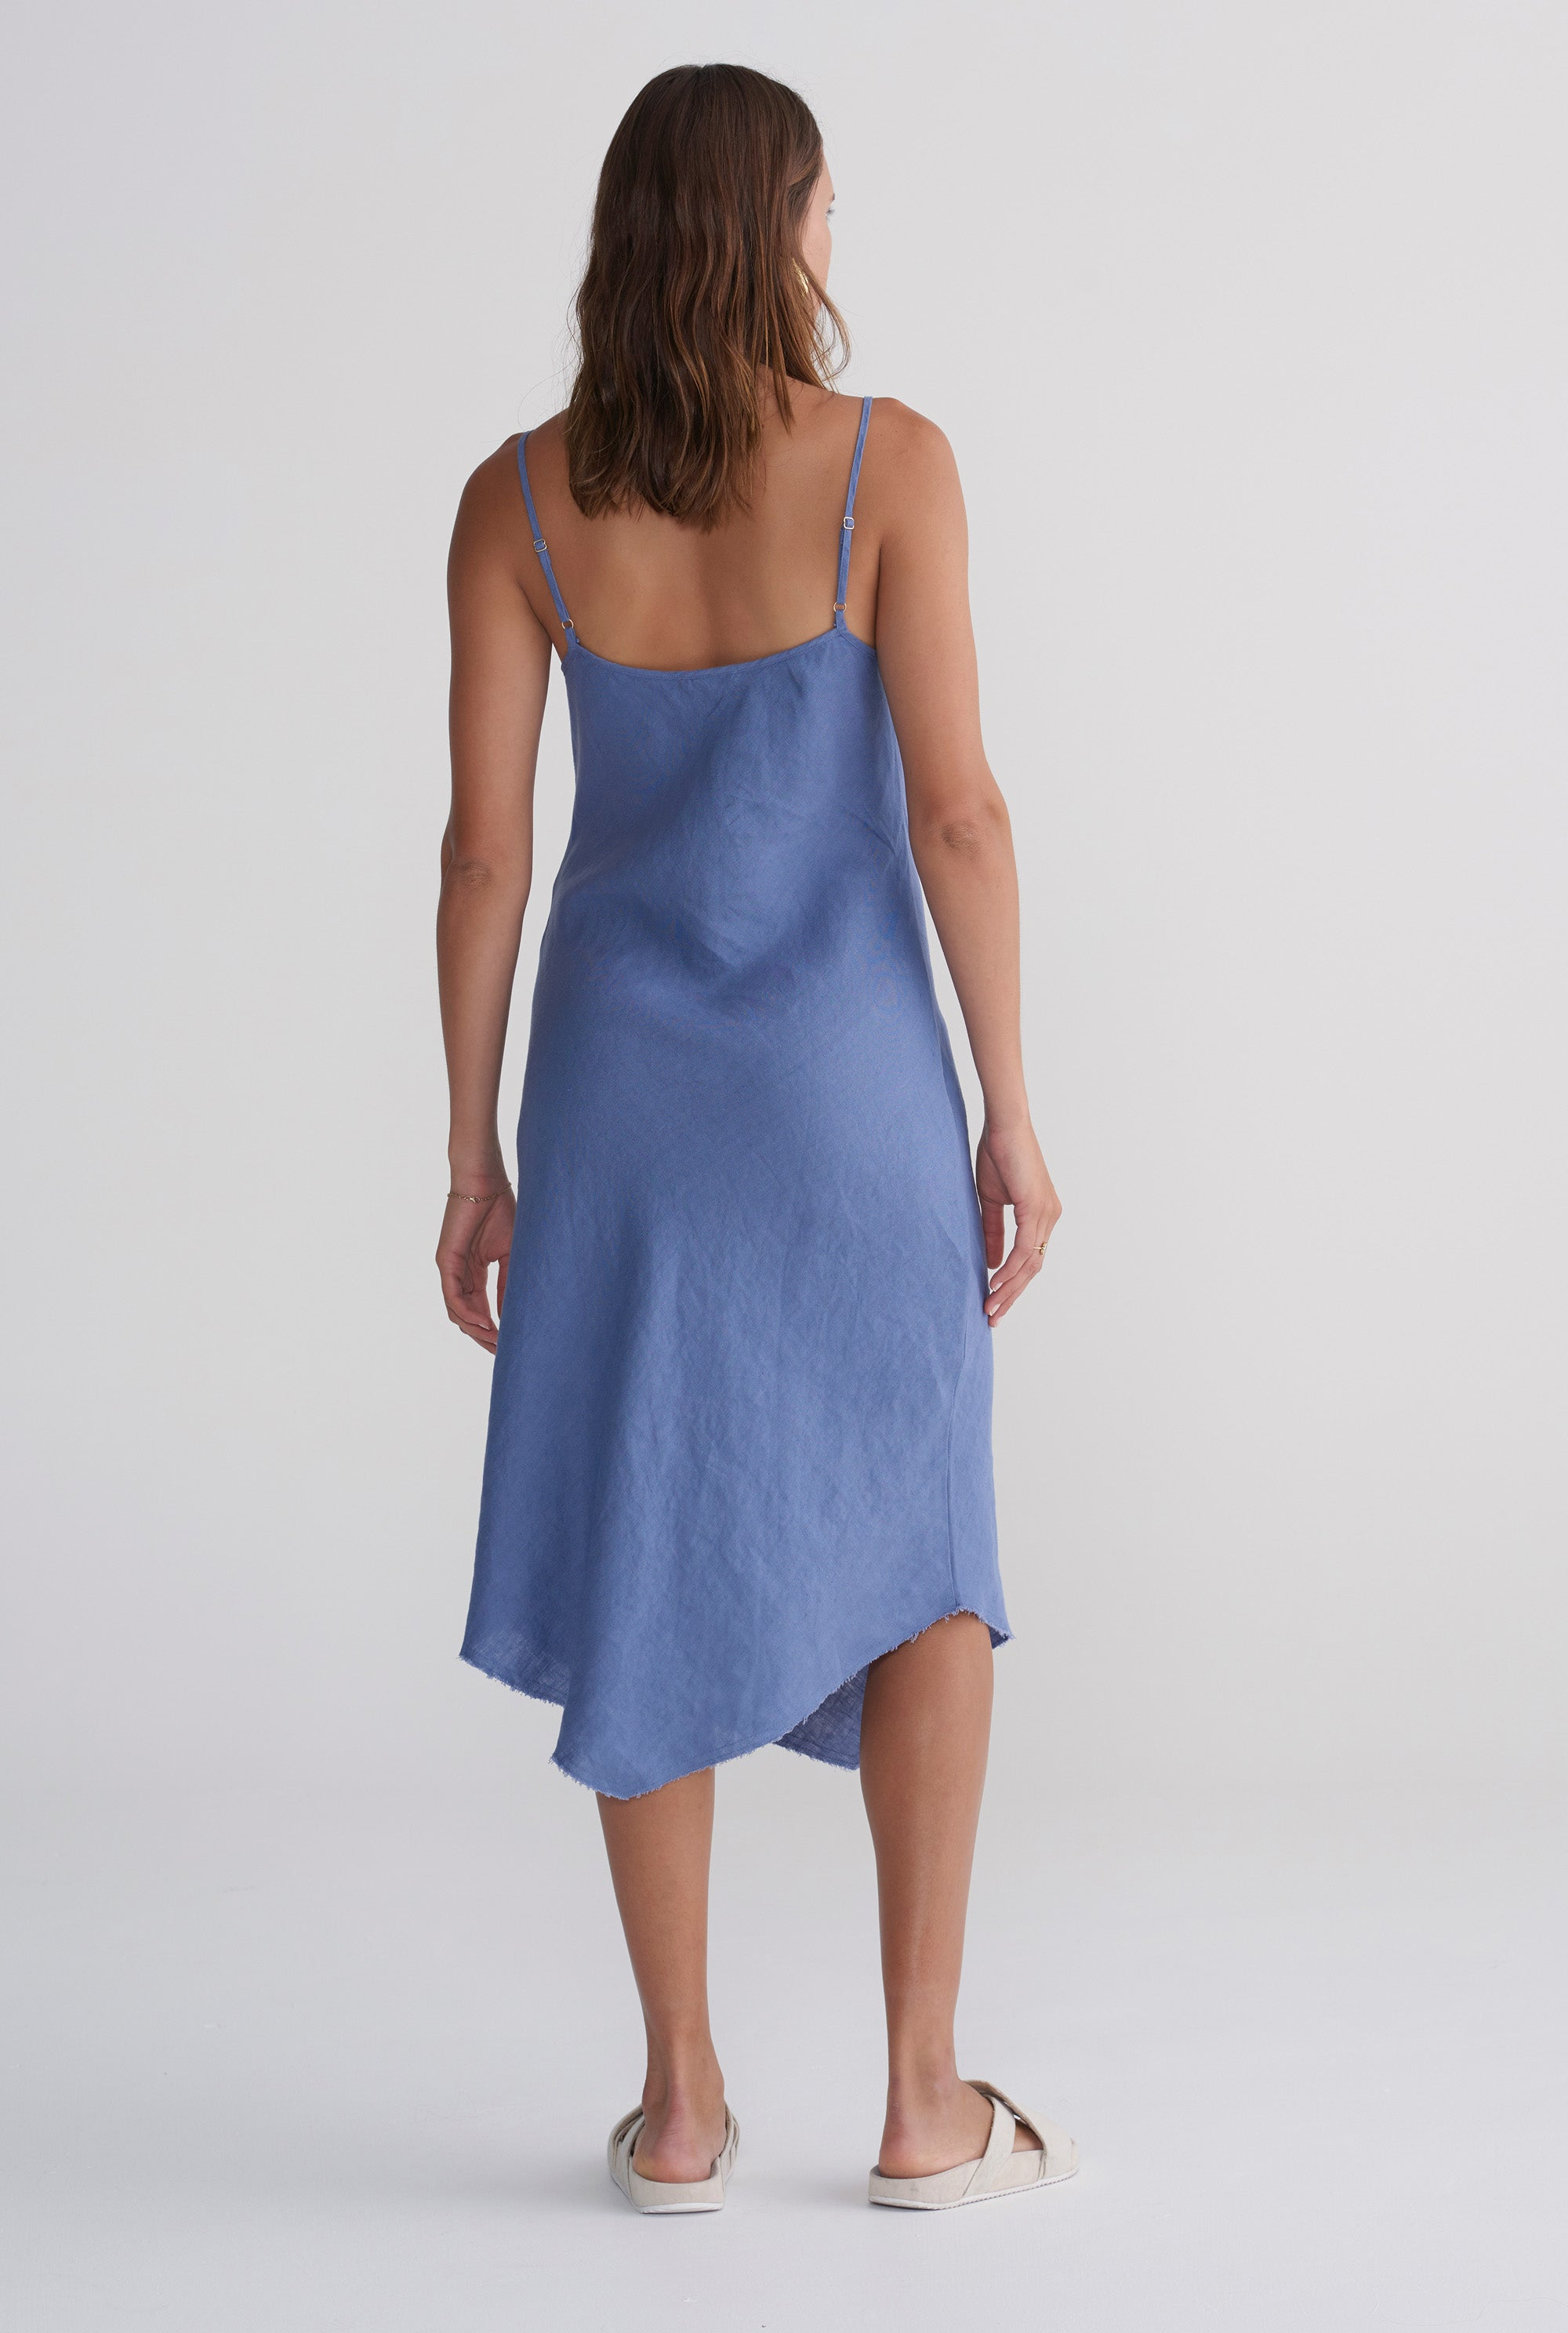 Linen Bias Dress - Marine Blue